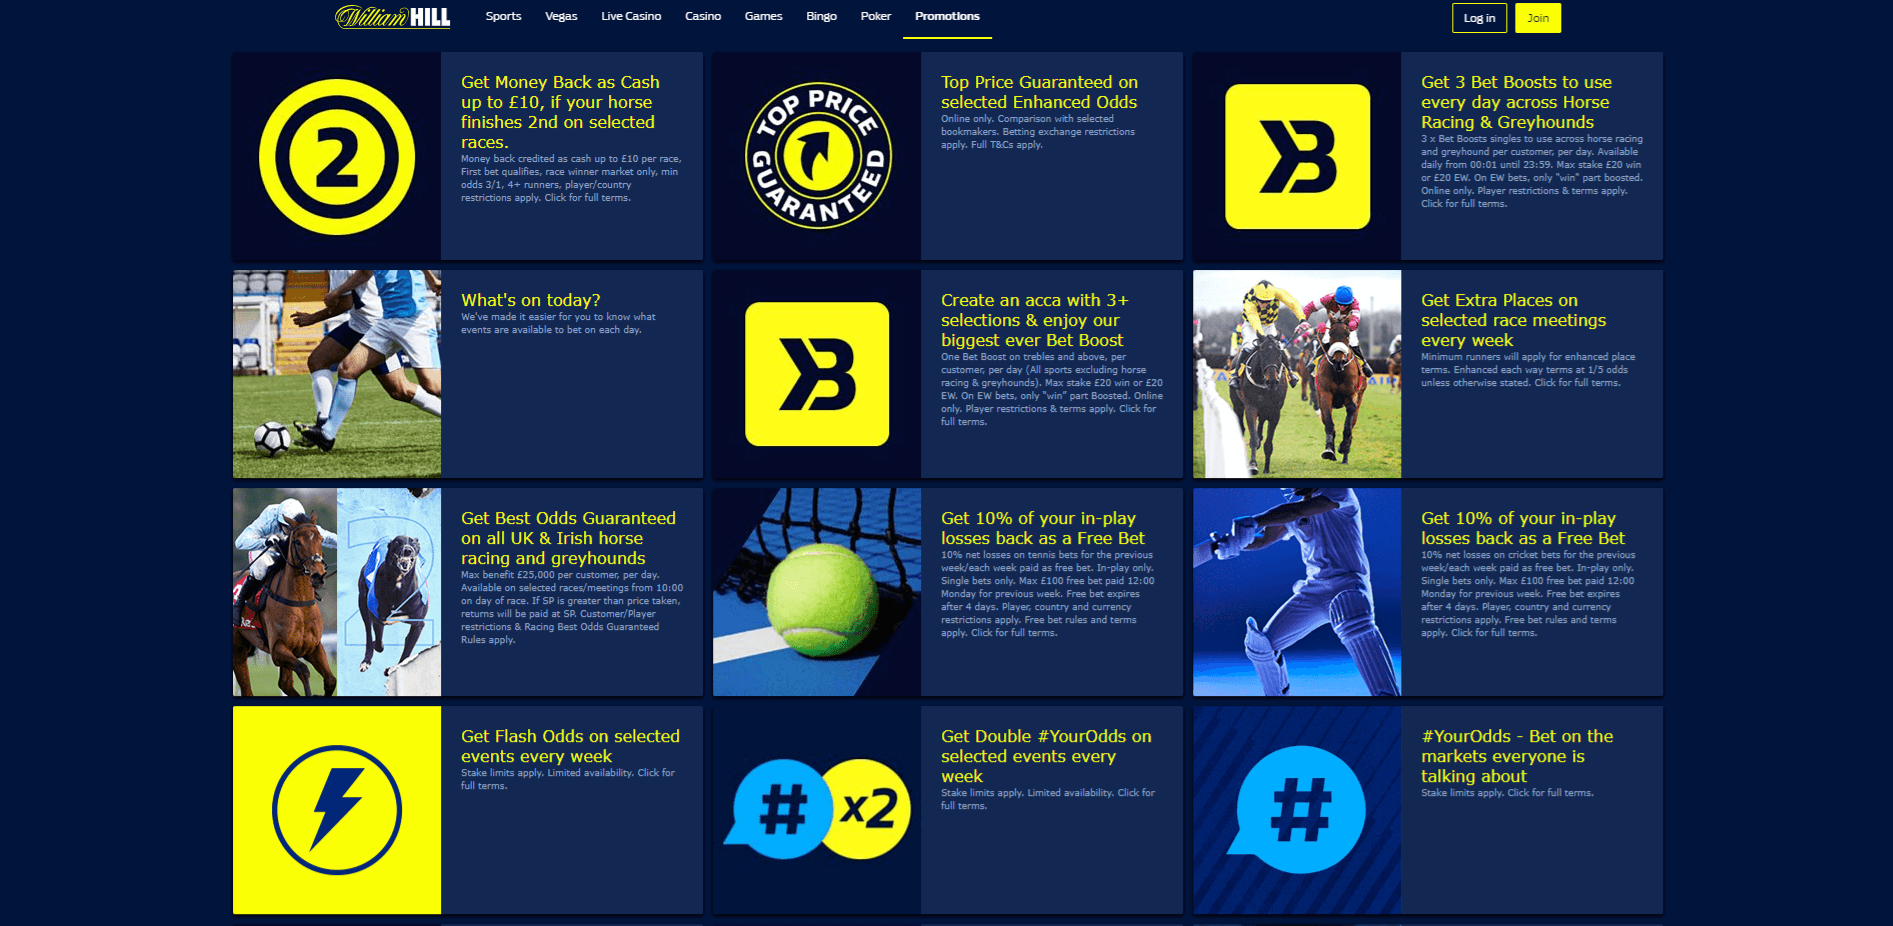 William Hill has the best promotions